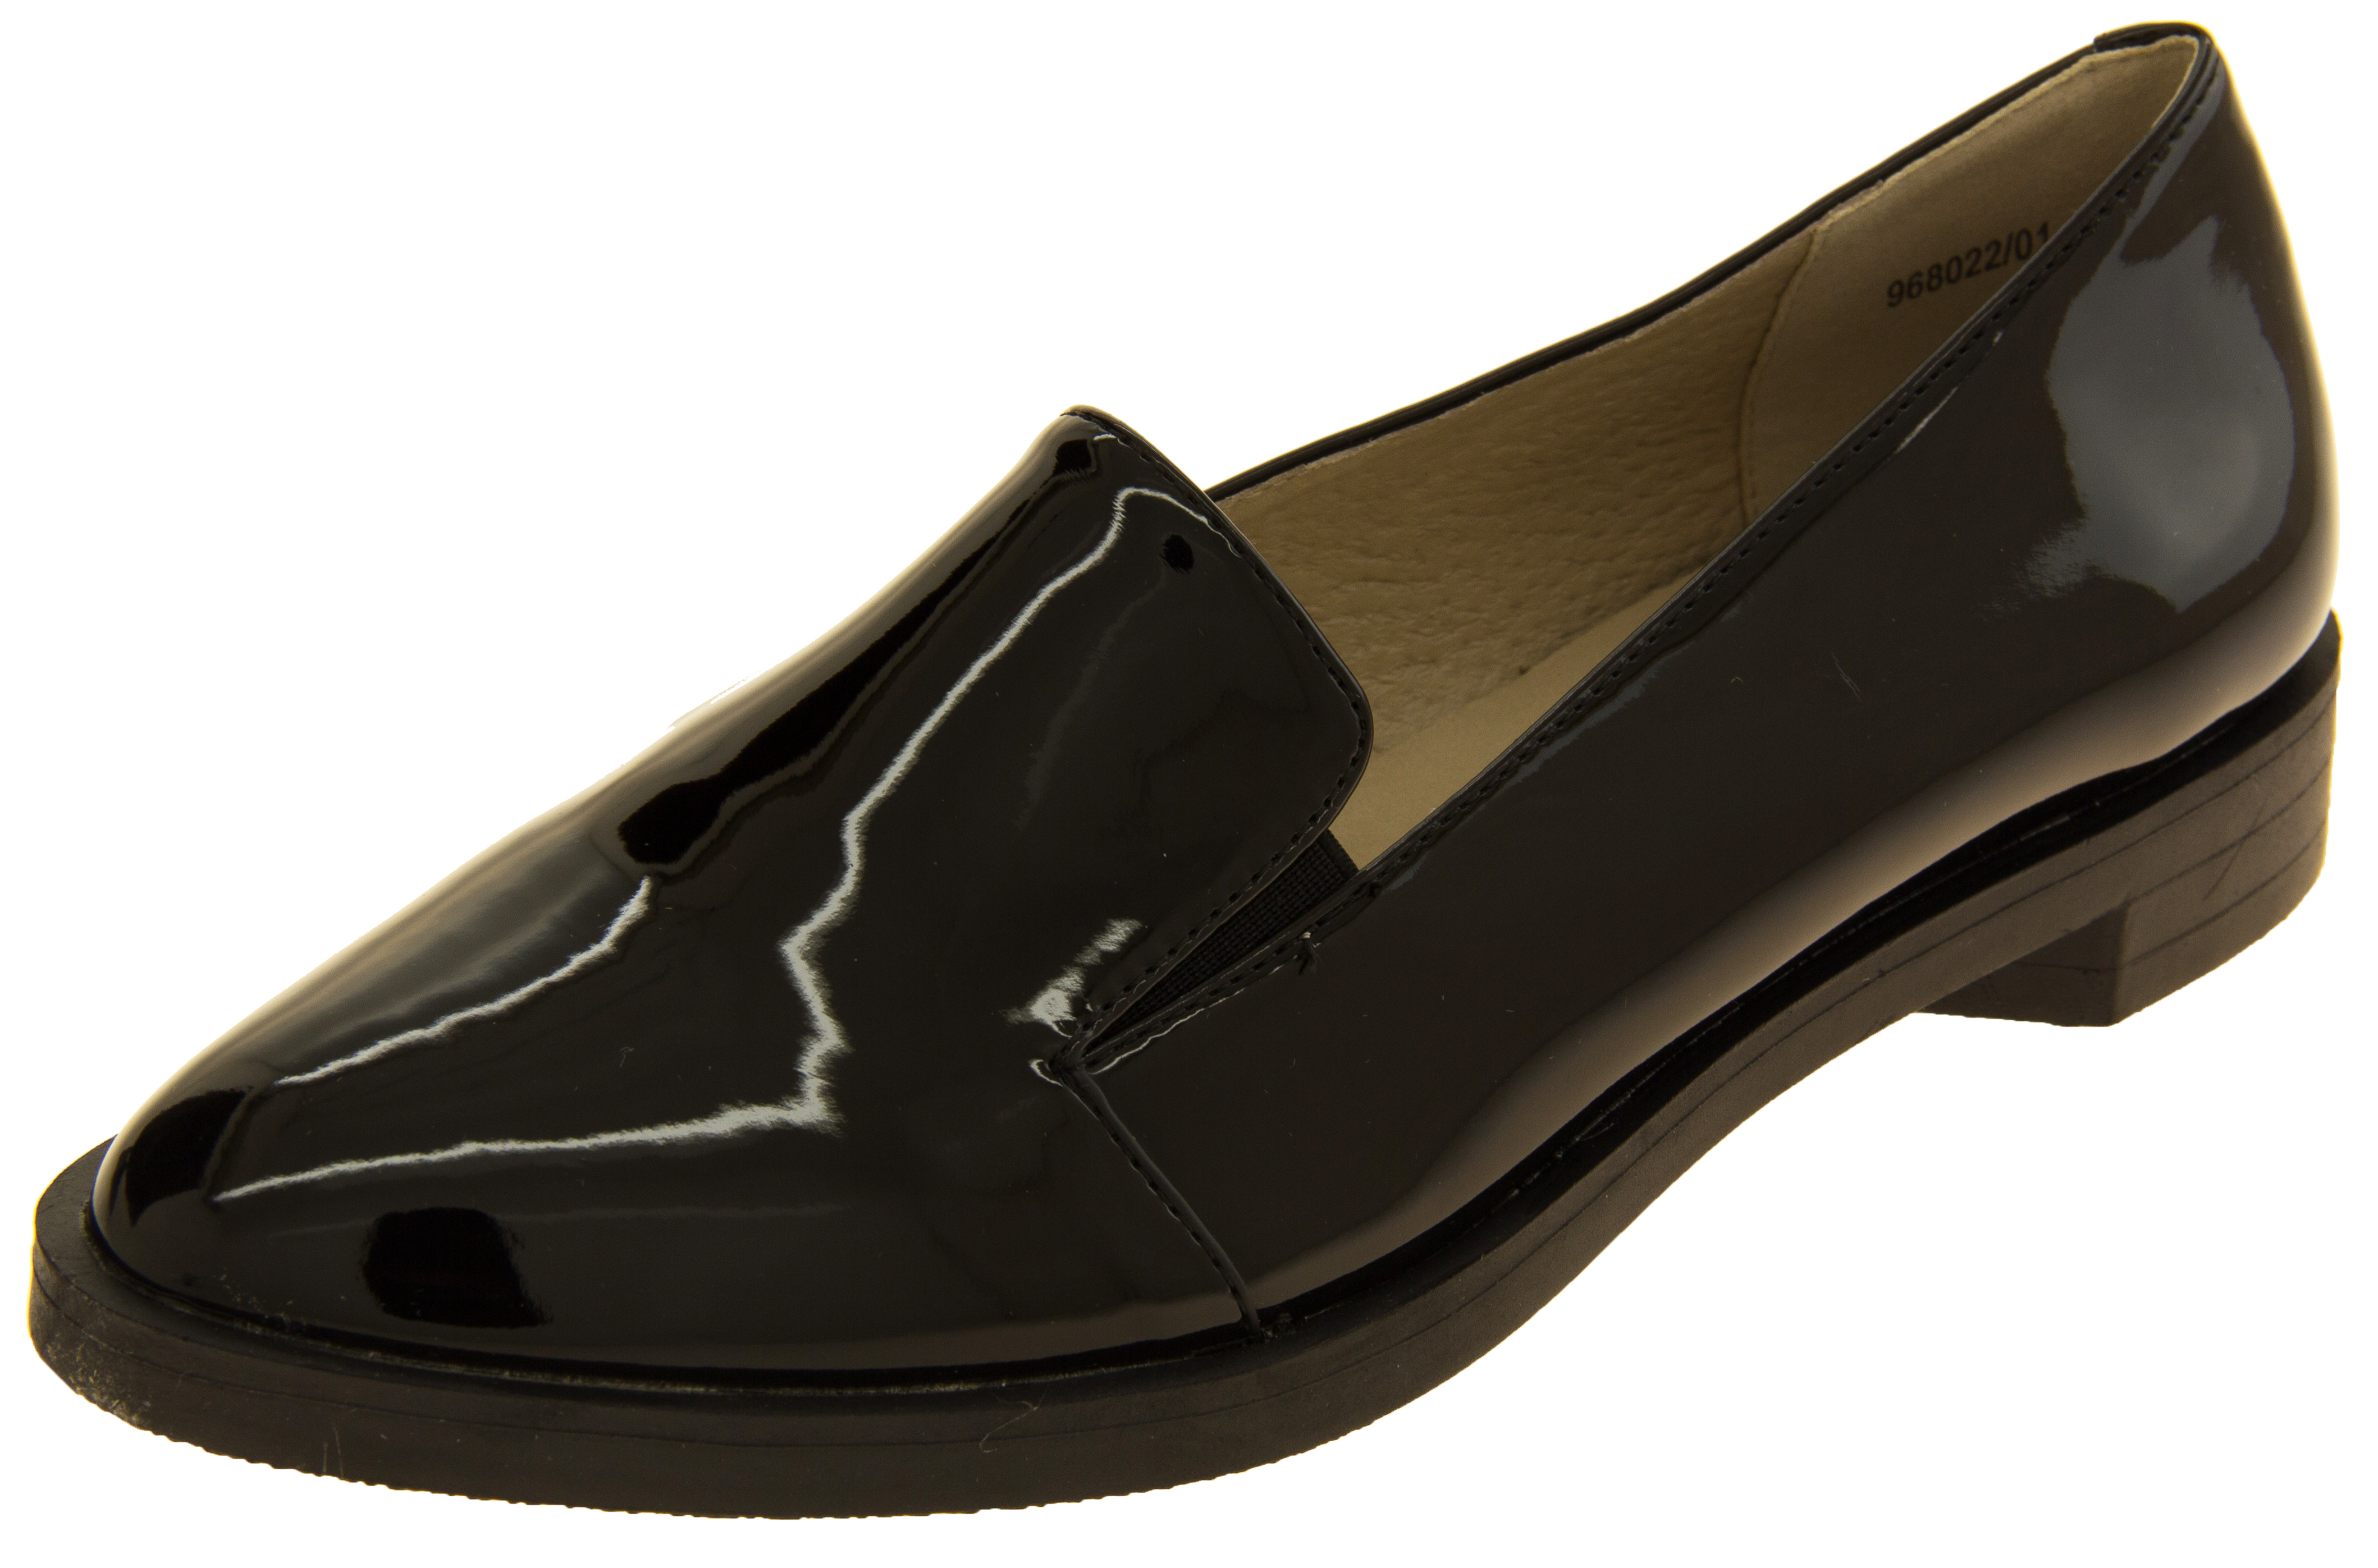 1faefb8cd7a Ladies Betsy Elegant Flat Faux Leather Patent Loafers Shoes